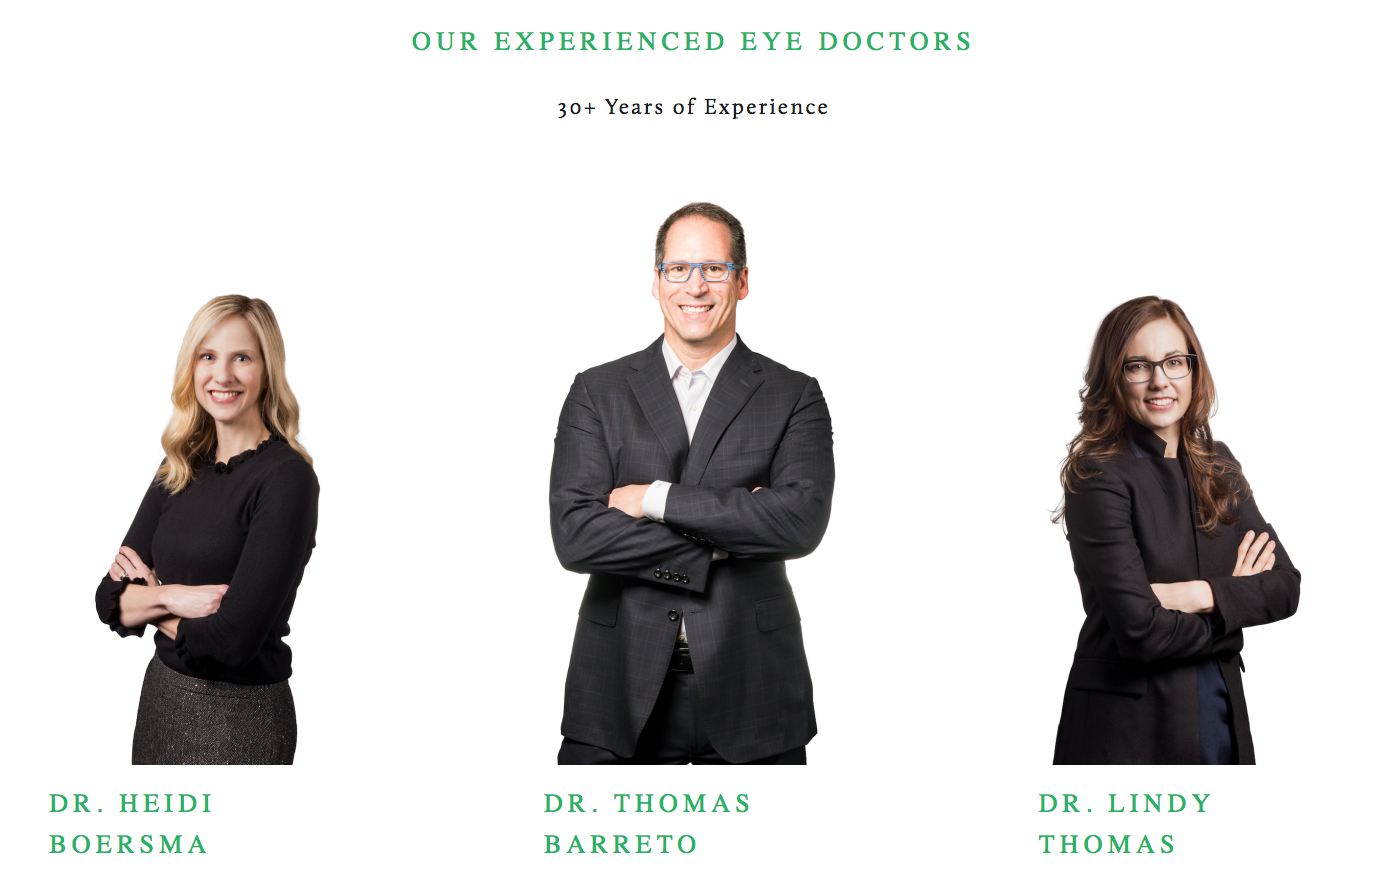 Here are three, key reasons that Eyes on Broadway has won this award 3-years running...seriously great eye doctors that offer consistent, quality care. Image Courtesy: eyesonbroadway.com